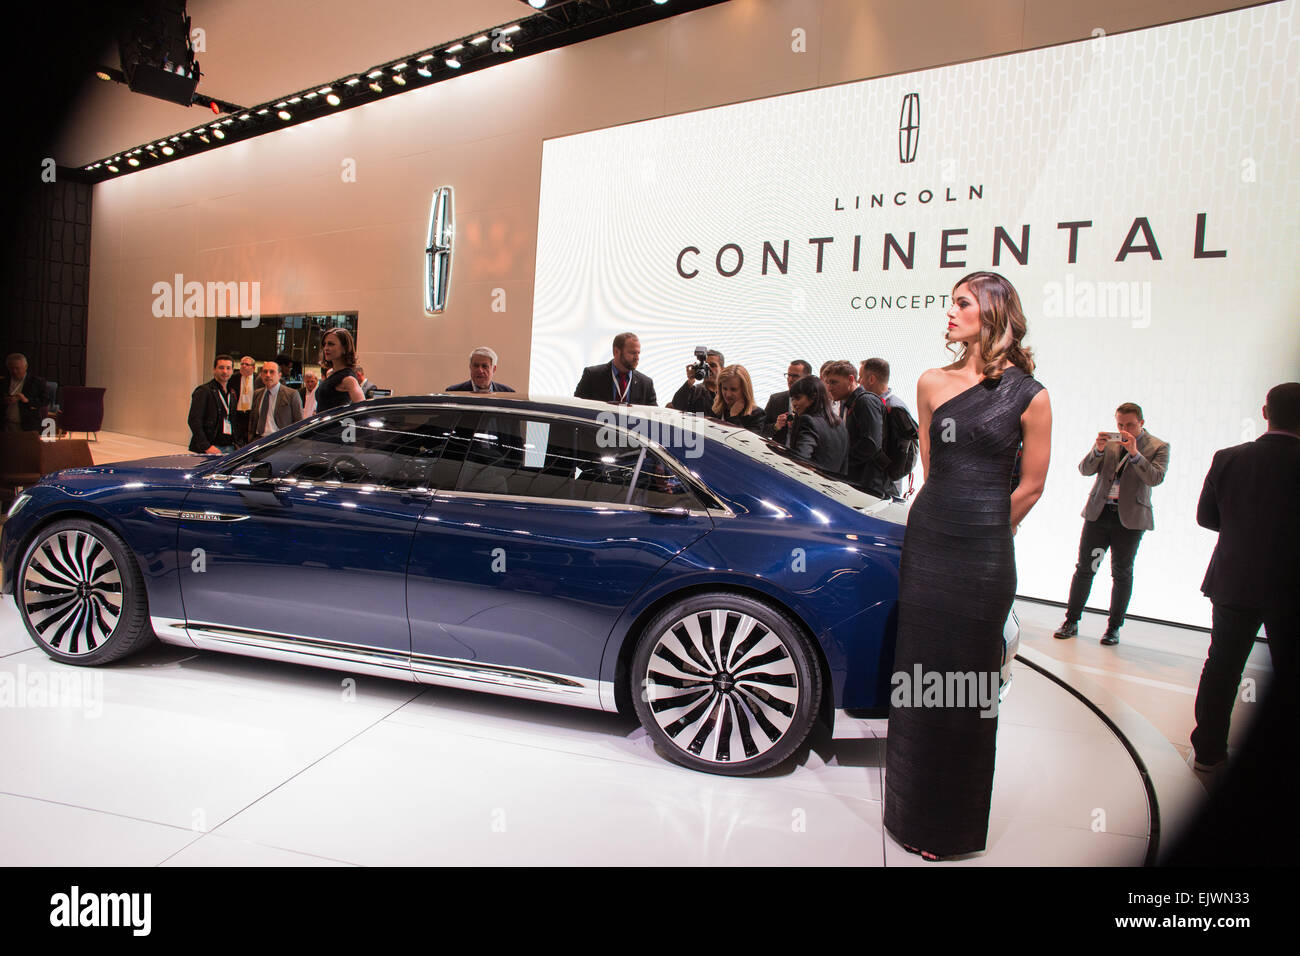 New York, NY - 1 April 2015. Lincoln unveiled its Continental concept car at the New York International Auto Show. - Stock Image